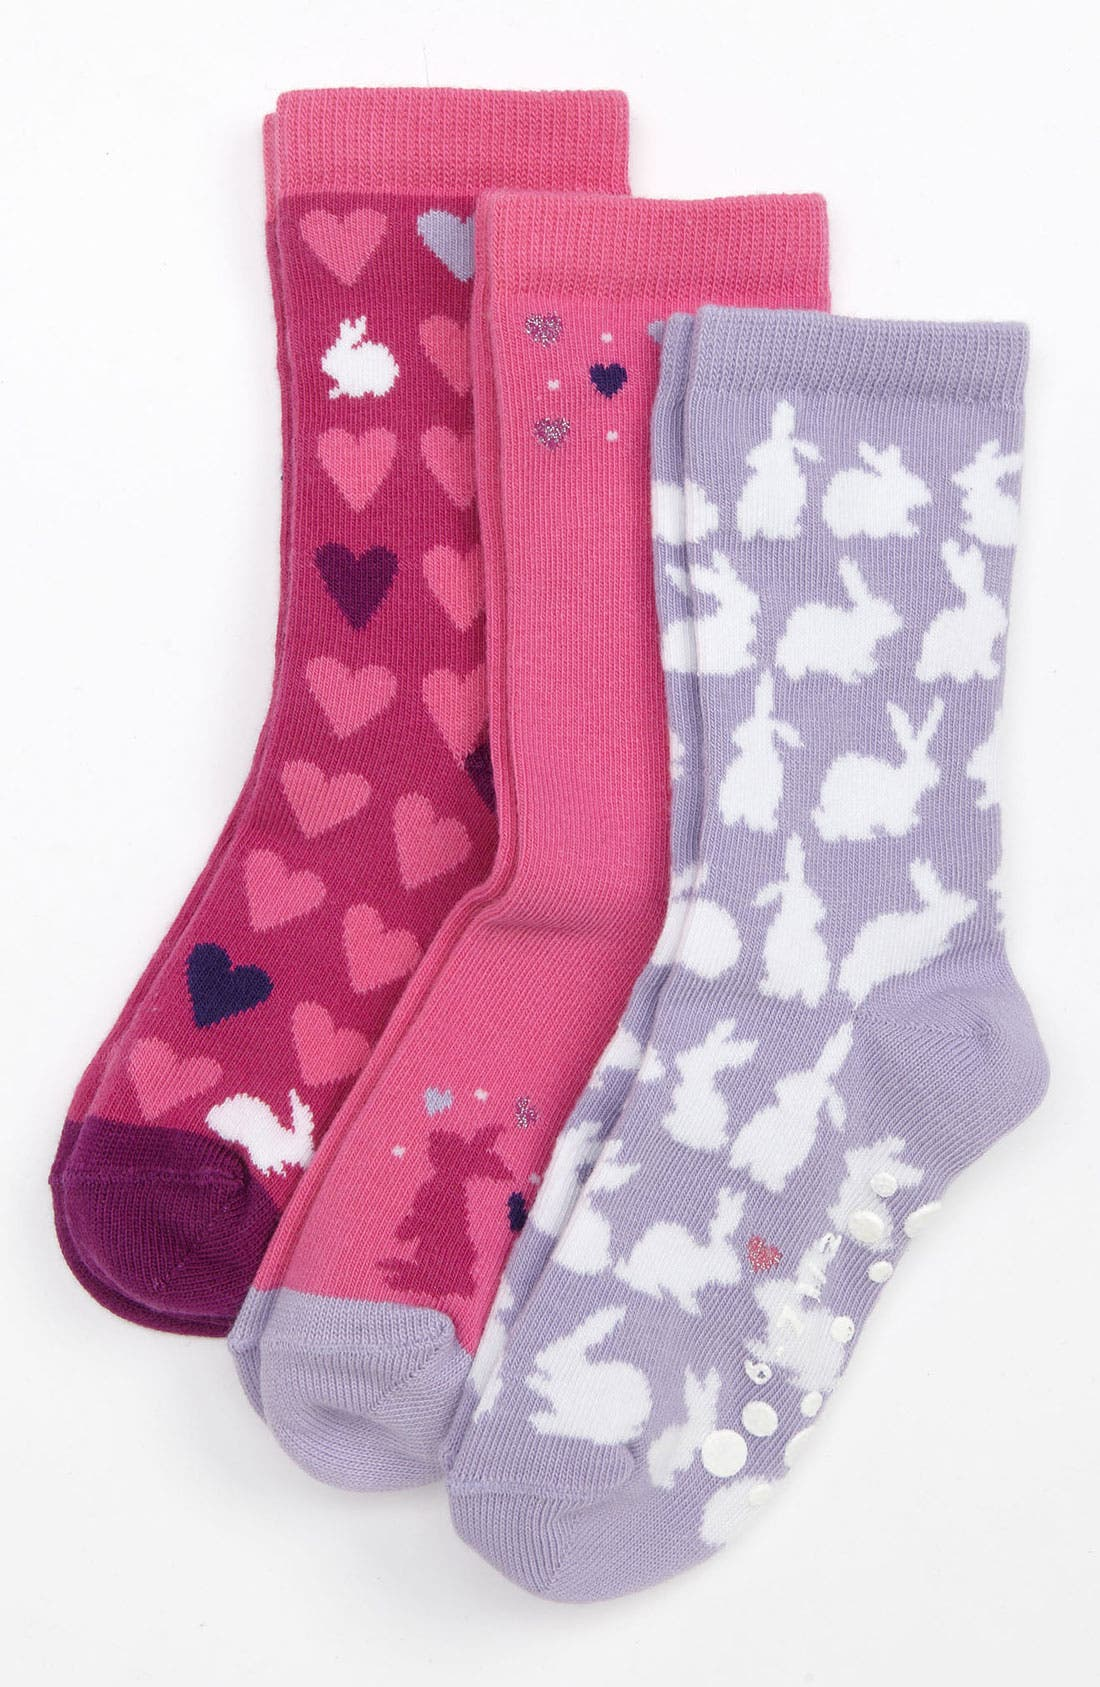 Alternate Image 1 Selected - Nordstrom 'Bunny Love' Crew Socks (3-Pack) (Girls)